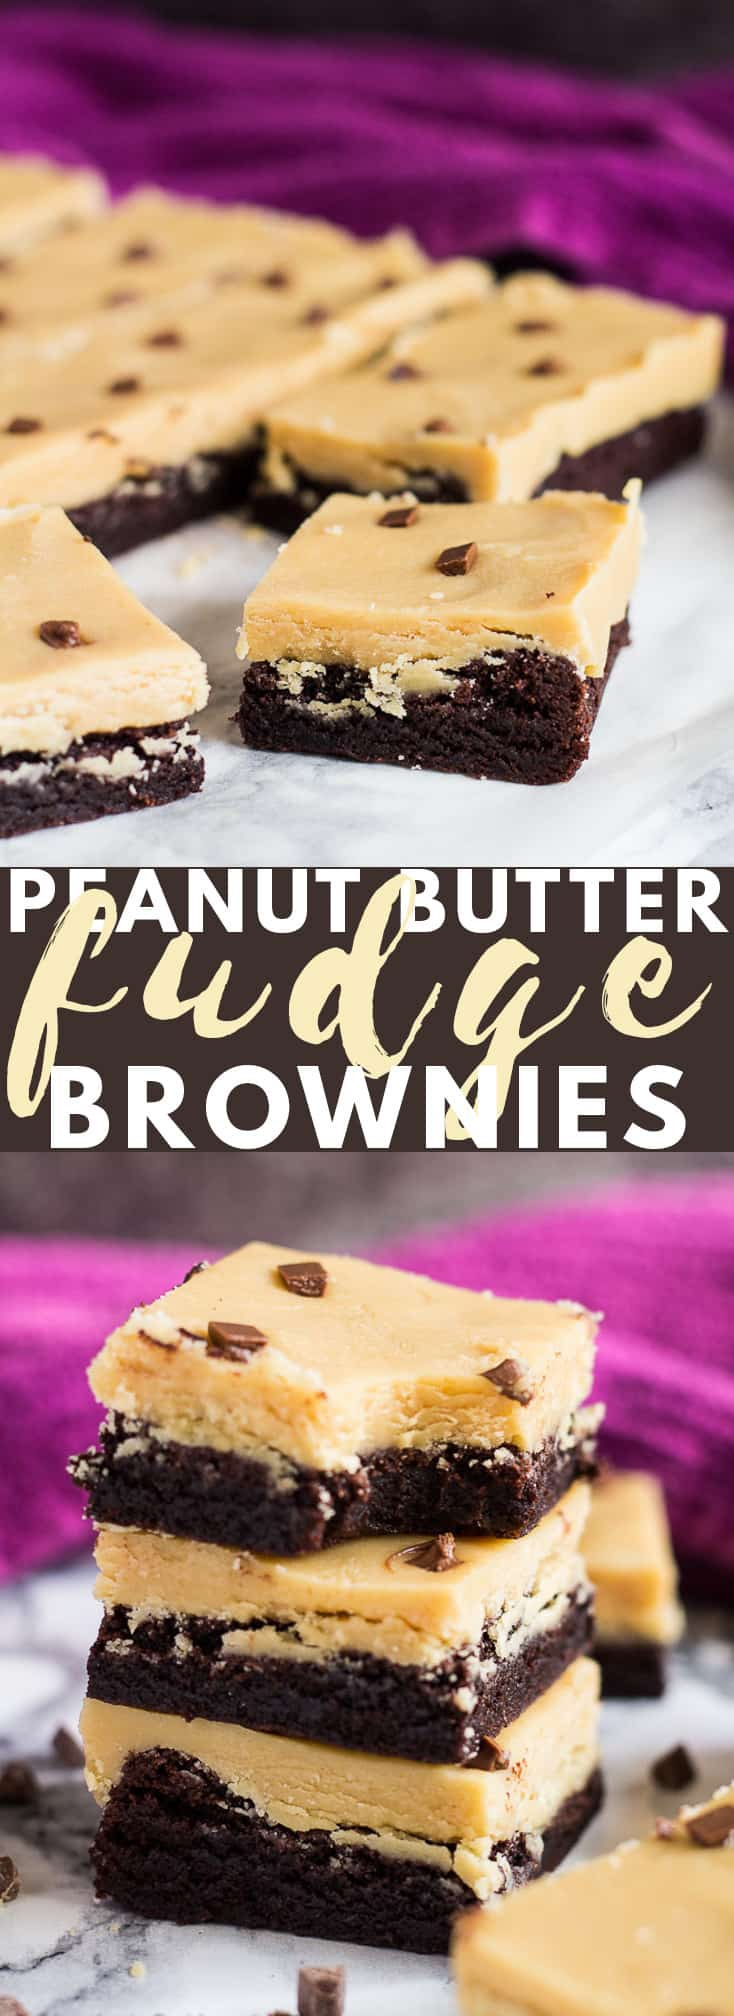 Peanut Butter Fudge Brownies - Deliciously thick and chewy rich chocolate brownies that are topped with a thick layer of creamy peanut butter fudge! #peanutbutter #fudge #brownies #brownierecipes